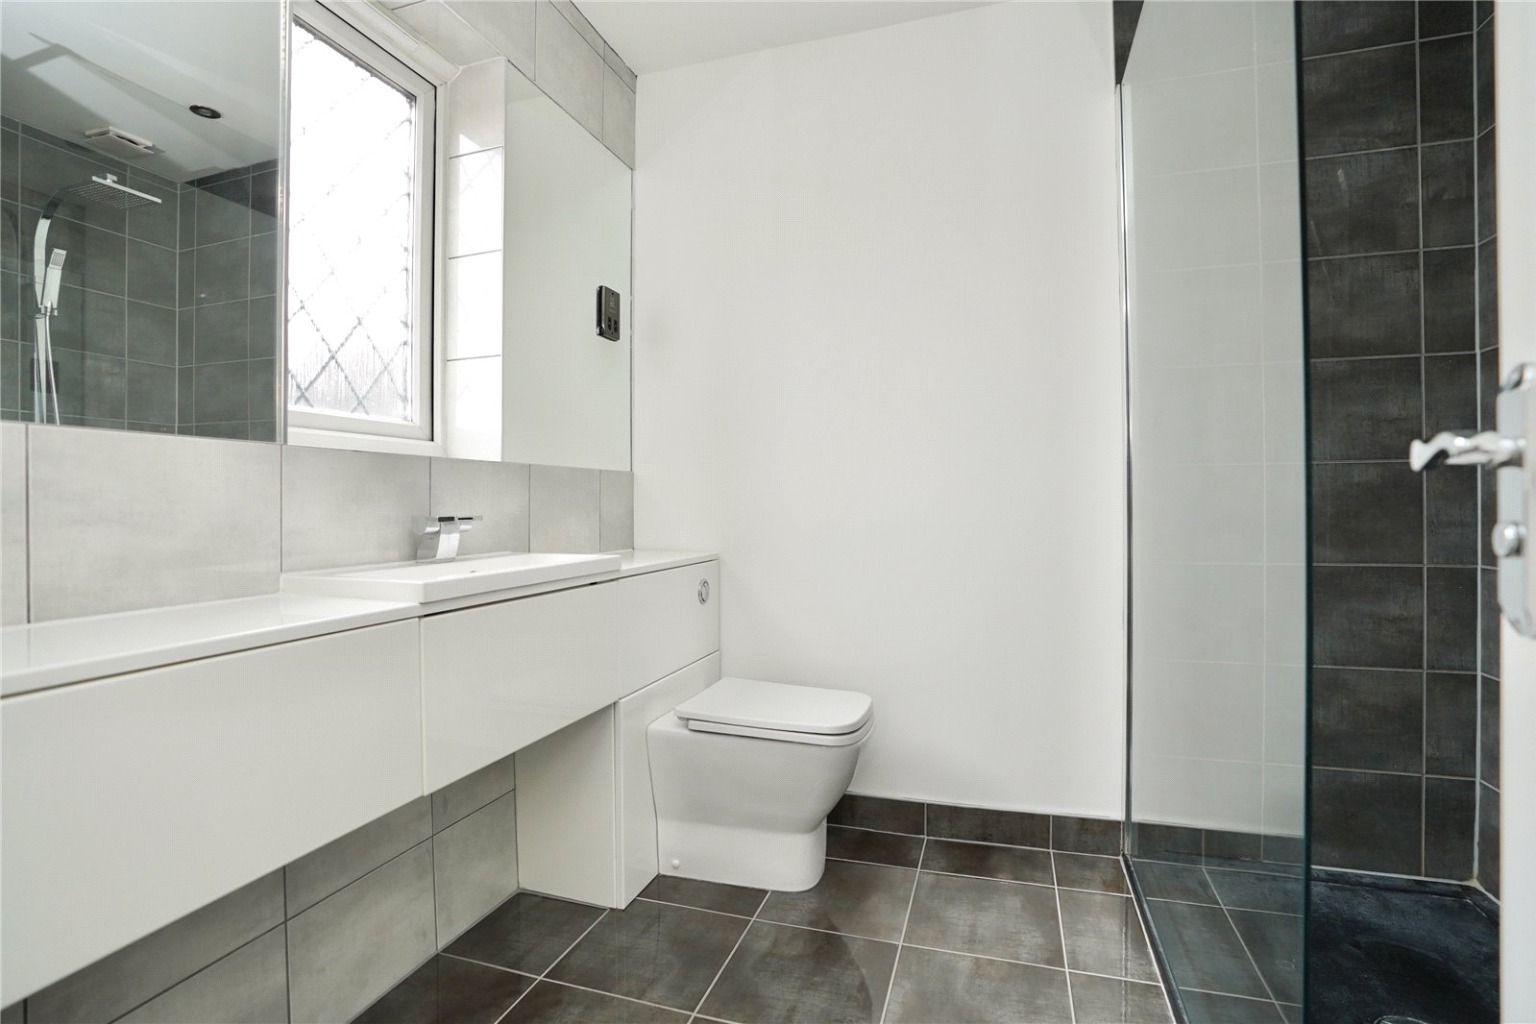 3 bed detached house for sale in Chamberlain Way, St. Neots  - Property Image 10